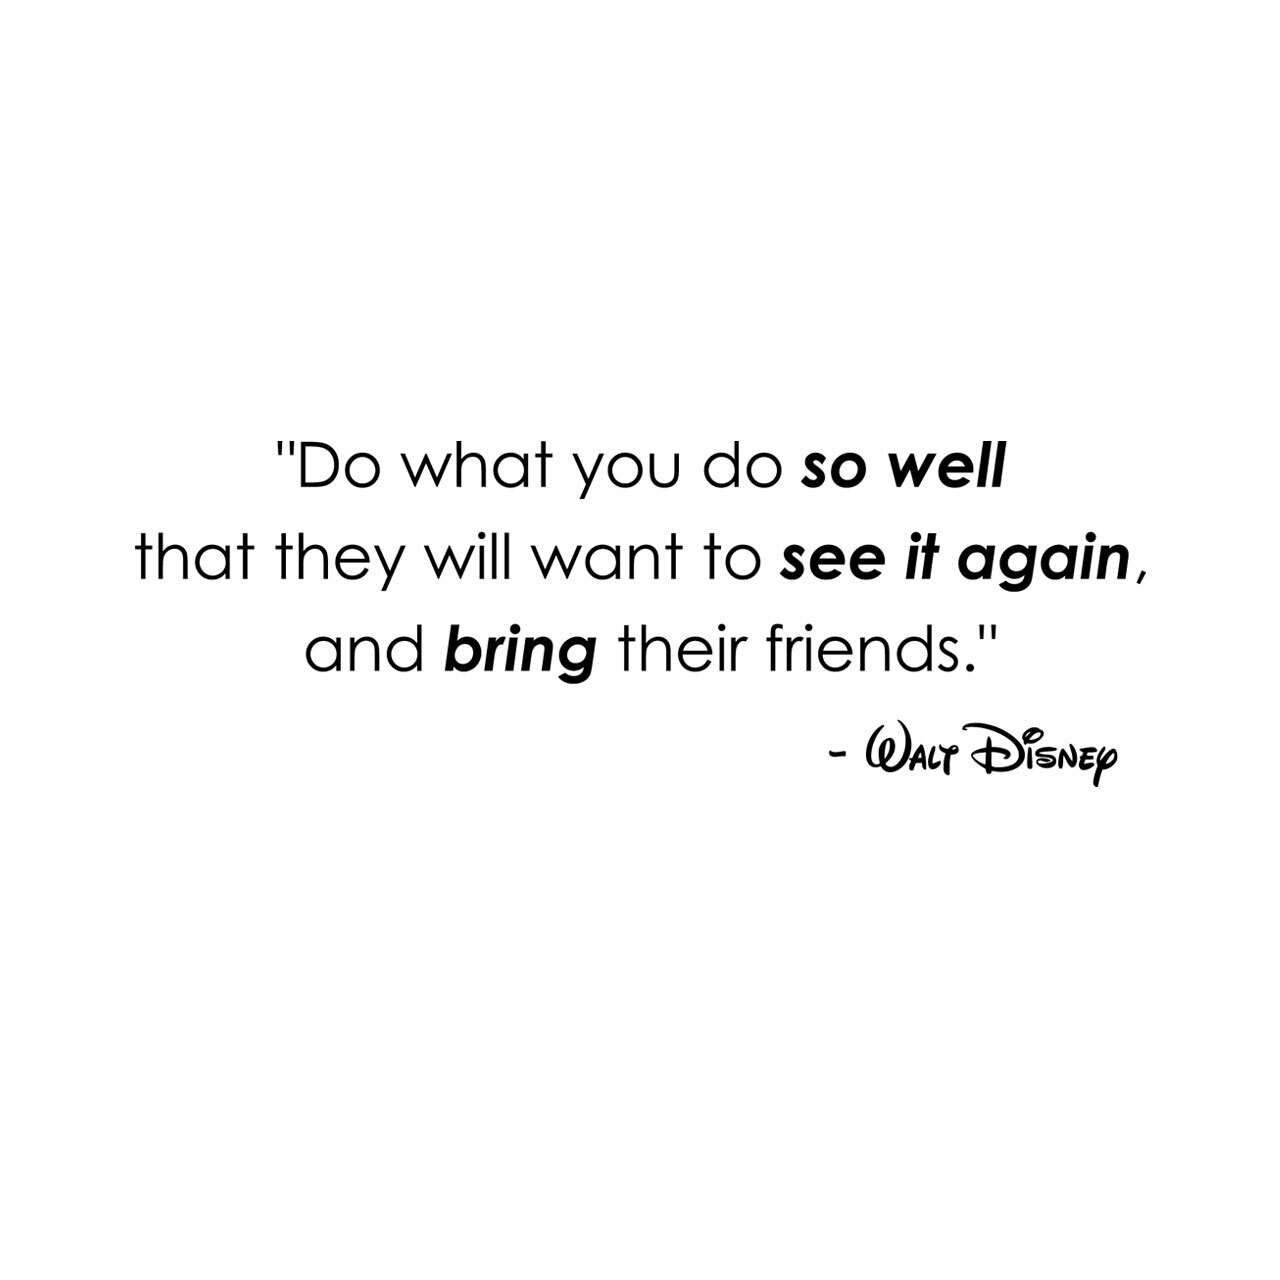 """""""Do what you do so well that they will want to see it again and bring their friends"""" -Walt Disney written in black on a white background"""